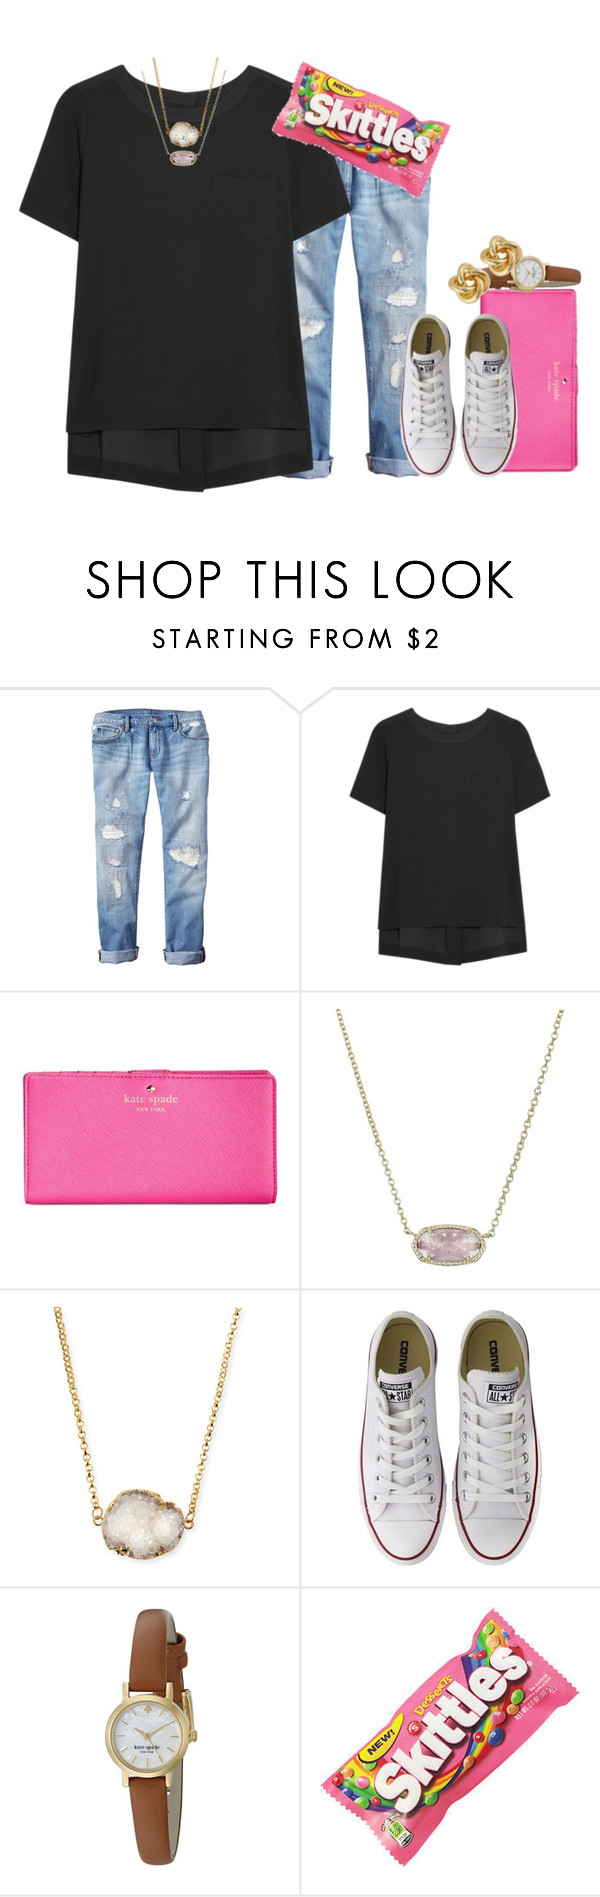 """sweet like candyyyy"" by thefashionbyem ❤ liked on Polyvore featuring moda, Gap, Madewell, Kate Spade, Kendra Scott, Jules Smith, Converse, R.J. Graziano, women's clothing i women"